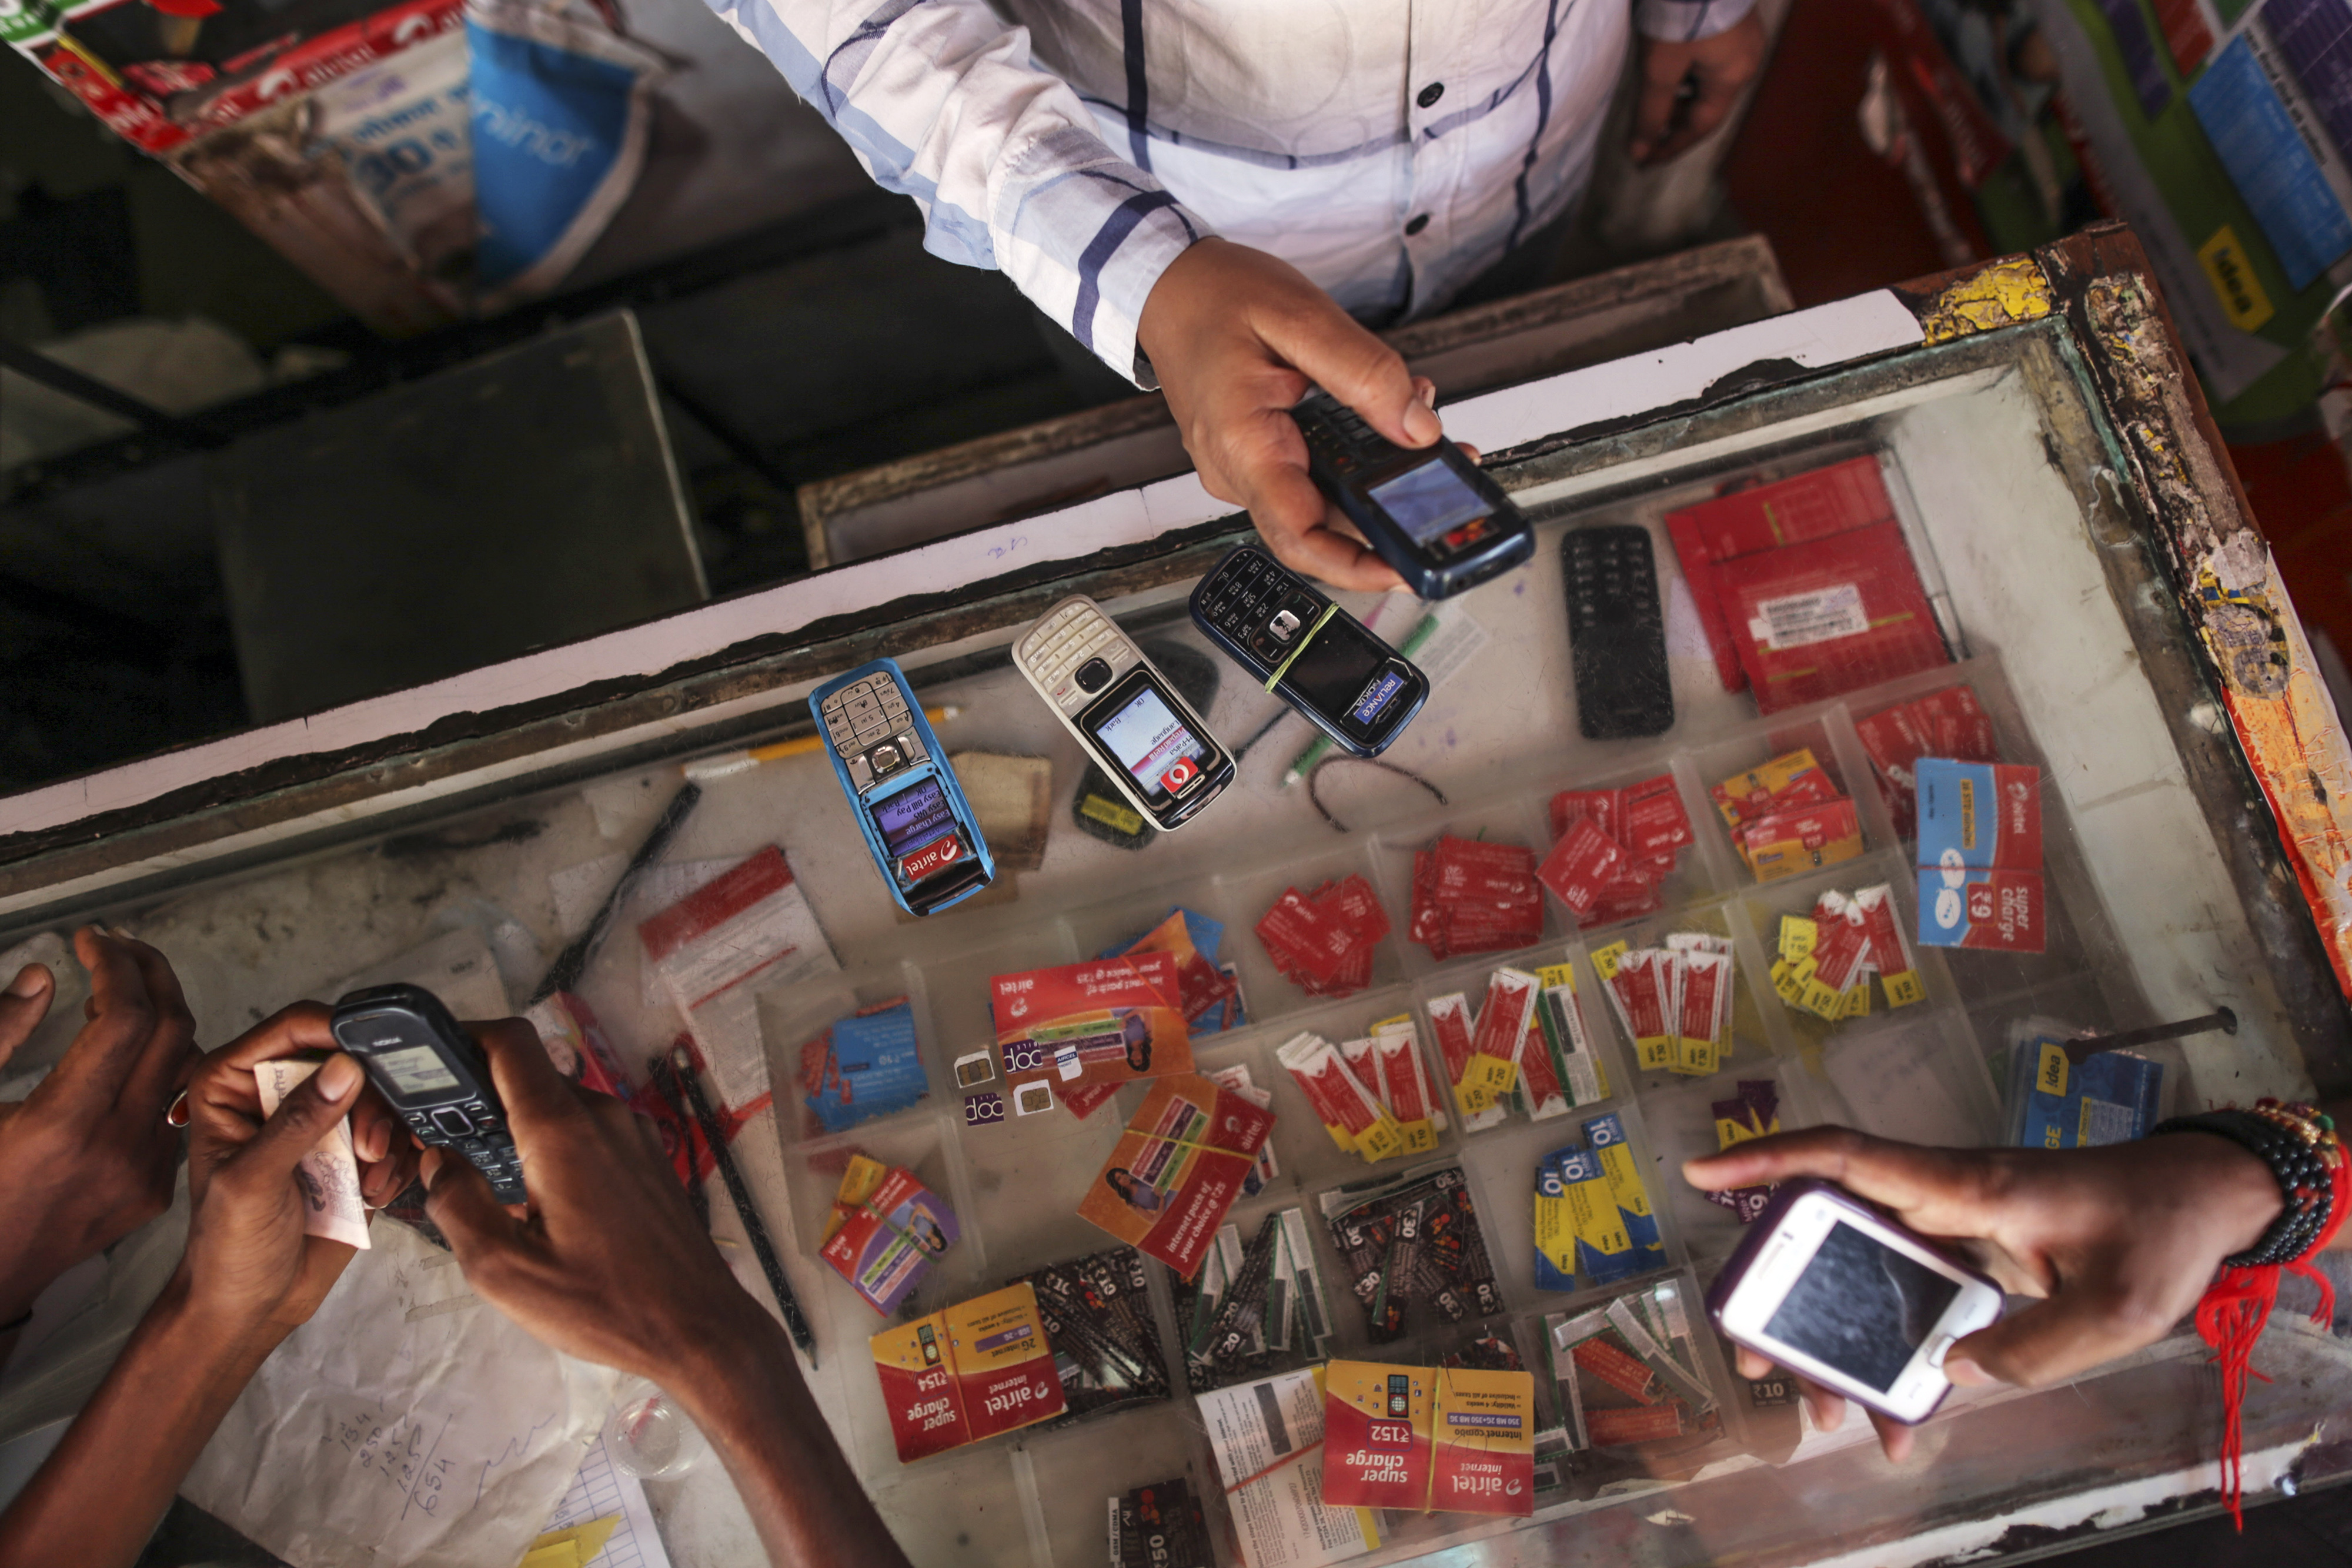 Customers wait to recharge their mobile phones at a mobile-phone store in Mumbai on Aug. 12, 2014